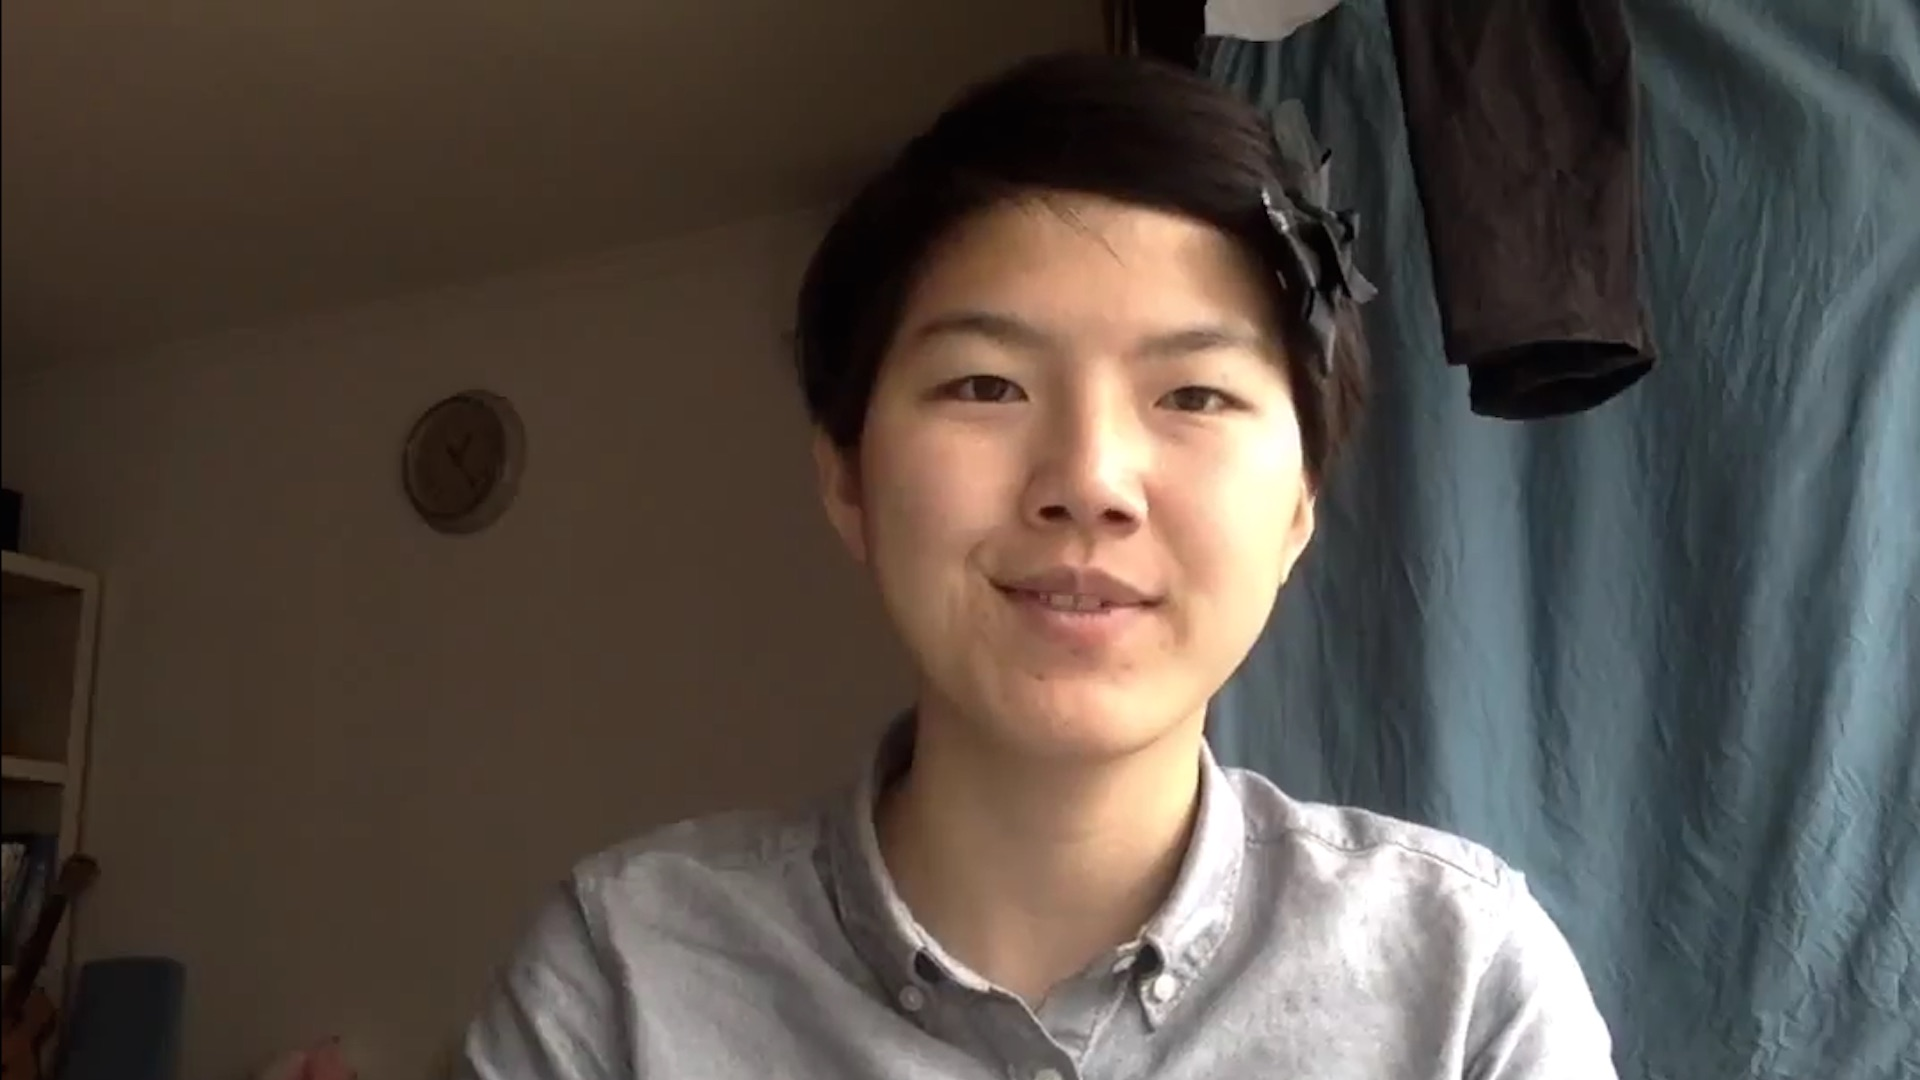 Watch: A Chinese feminist's defiant message to the government that jailed her